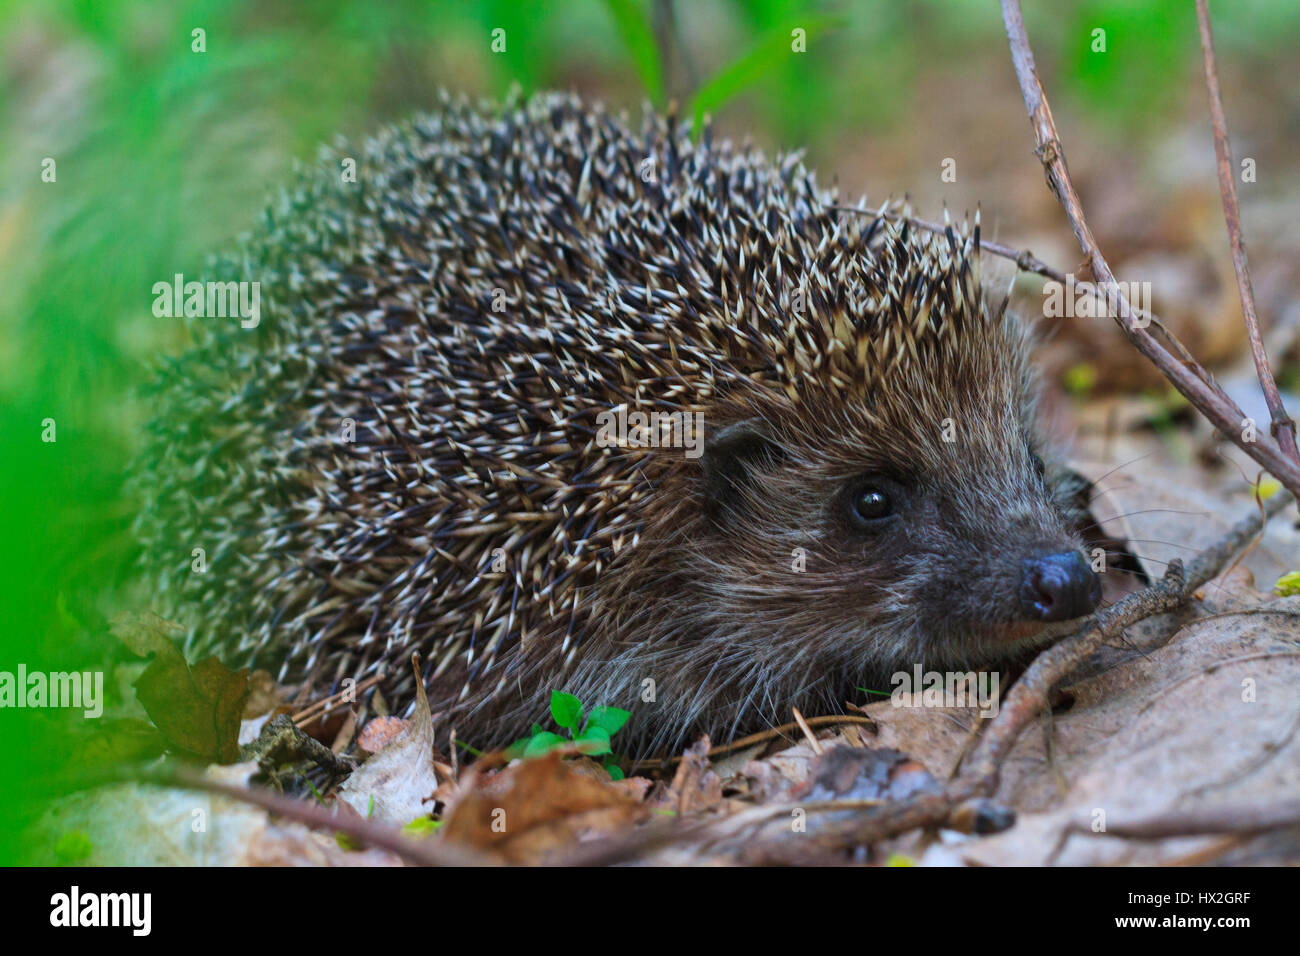 cute european Hedgehog among the dry leaves,mammals, predator prickly animal complex, nocturnal animal, the animal - Stock Image